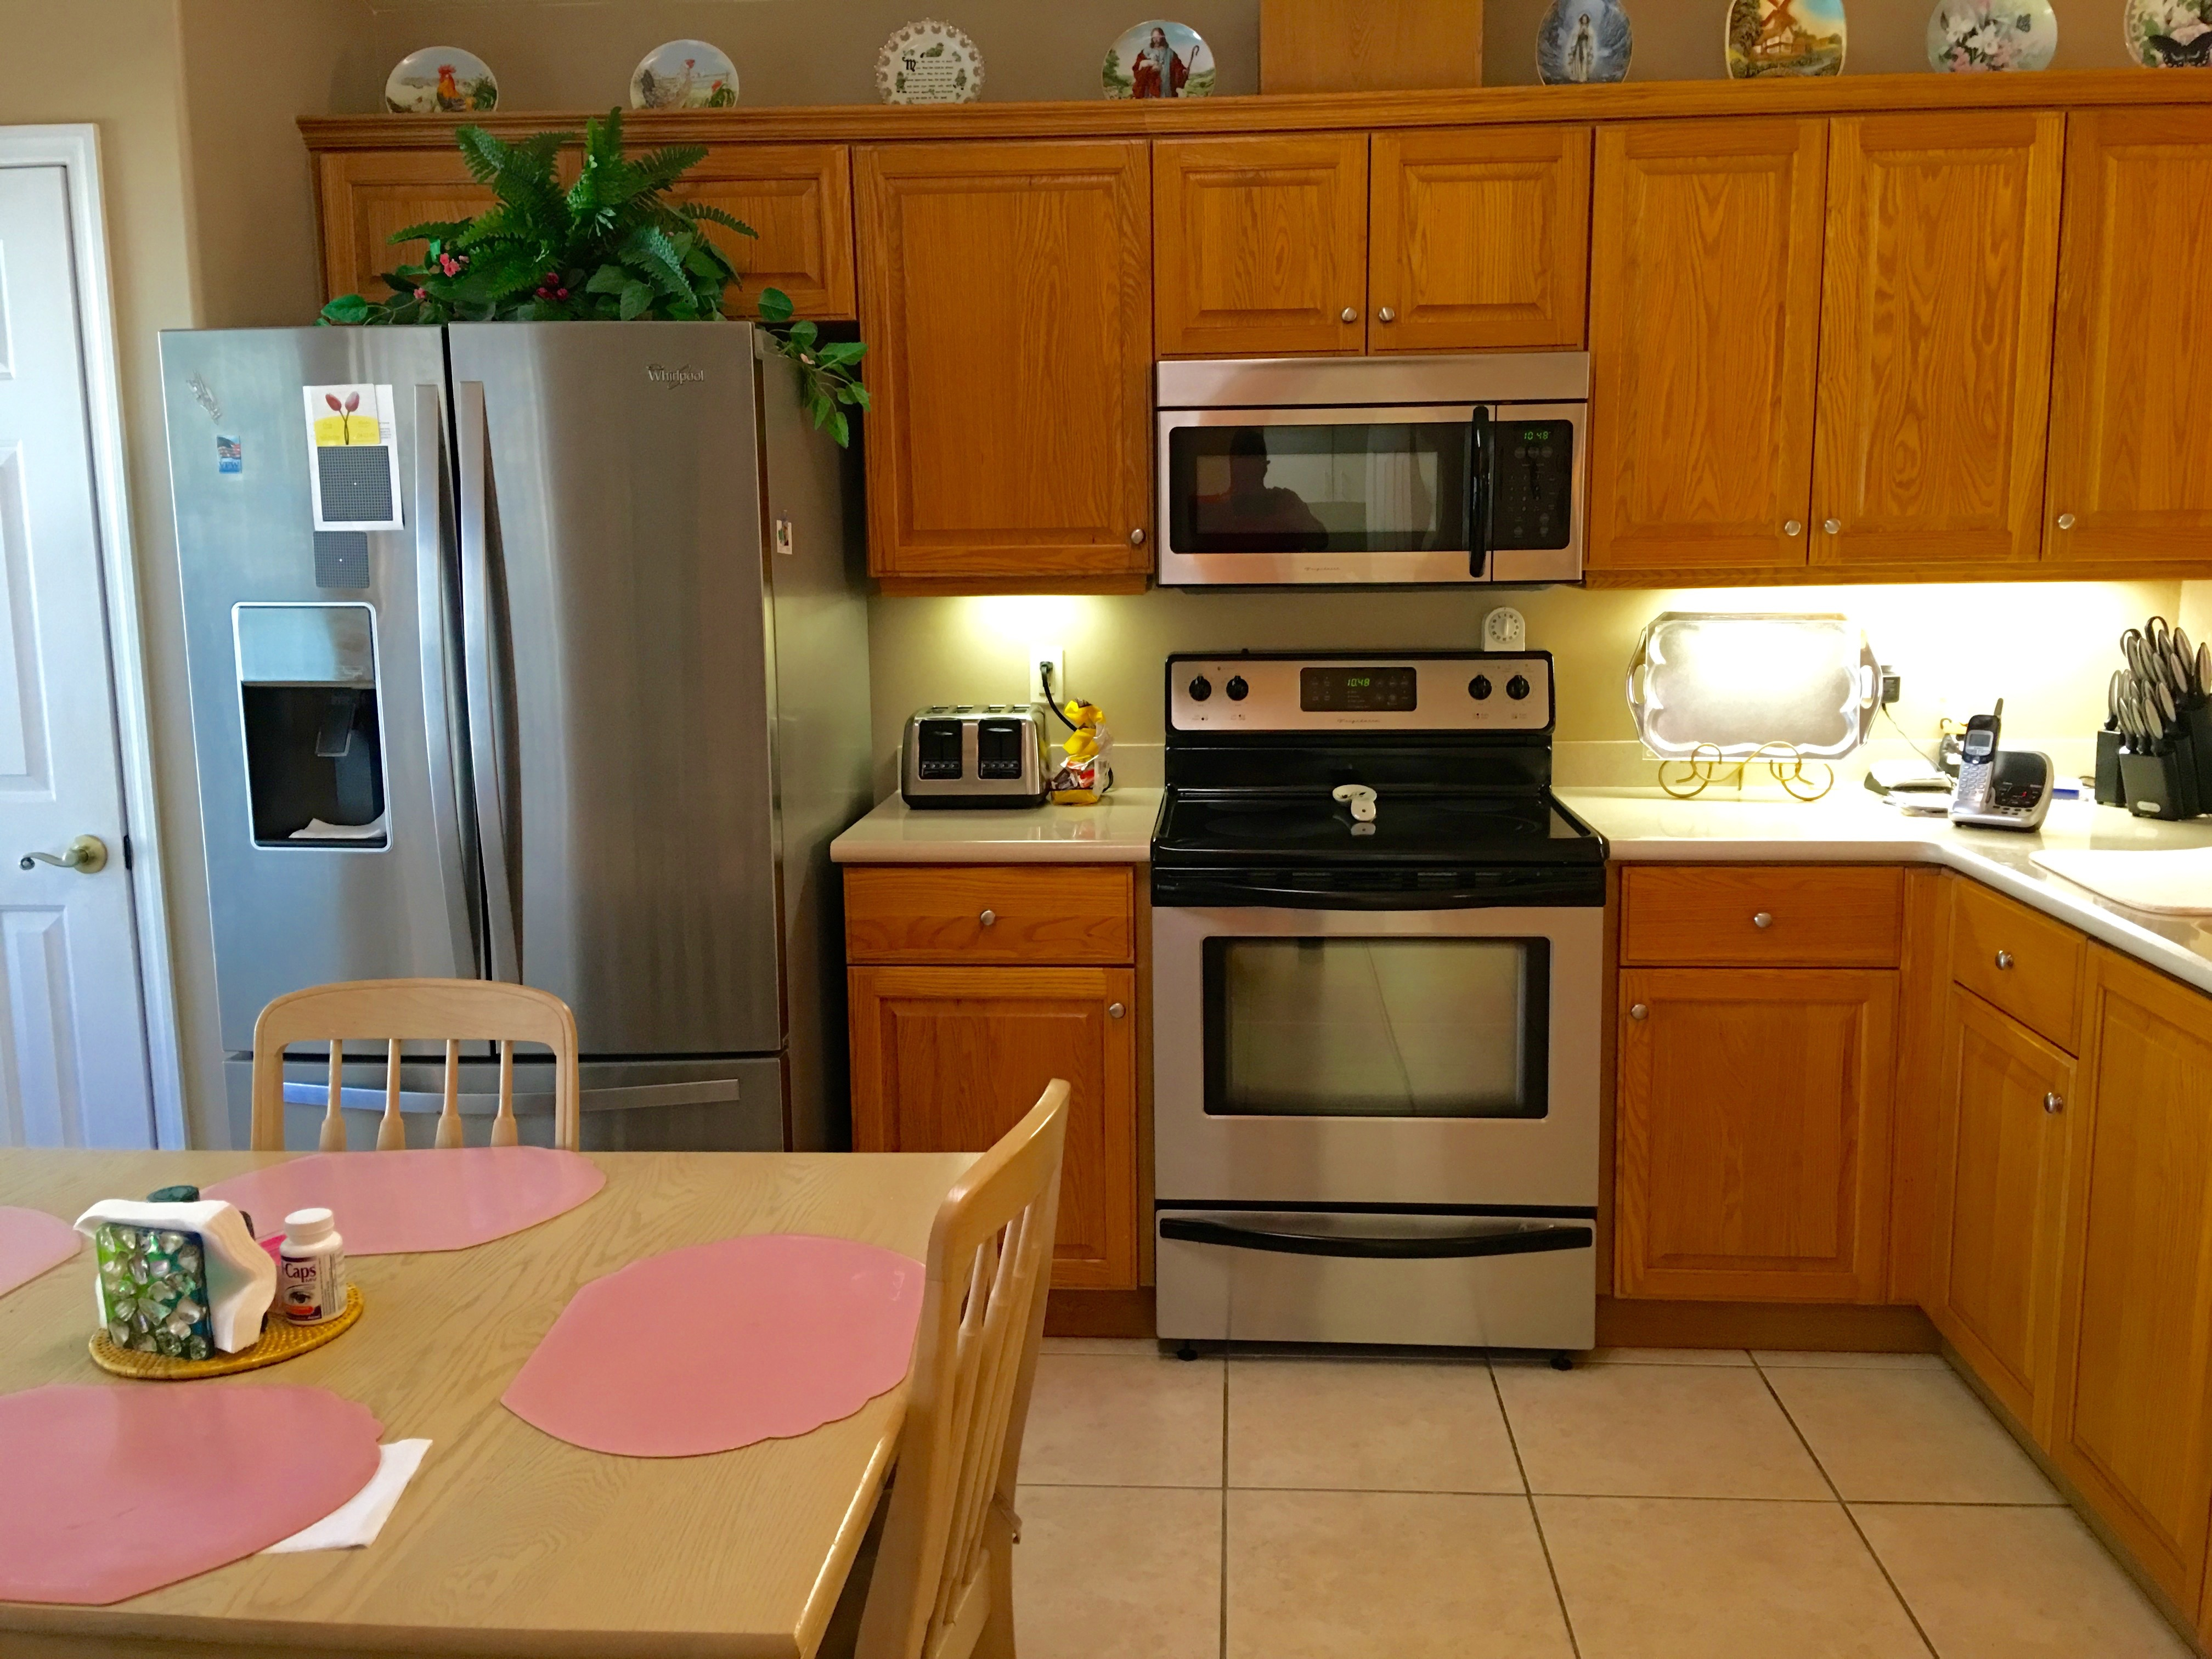 ormond beach real estate ormond beach homes for sale ormond check out this home in beautiful ormond lakes with 3 bedrooms and 2 baths 2 car garage watch the deer and wild life from the screened porch on a quiet